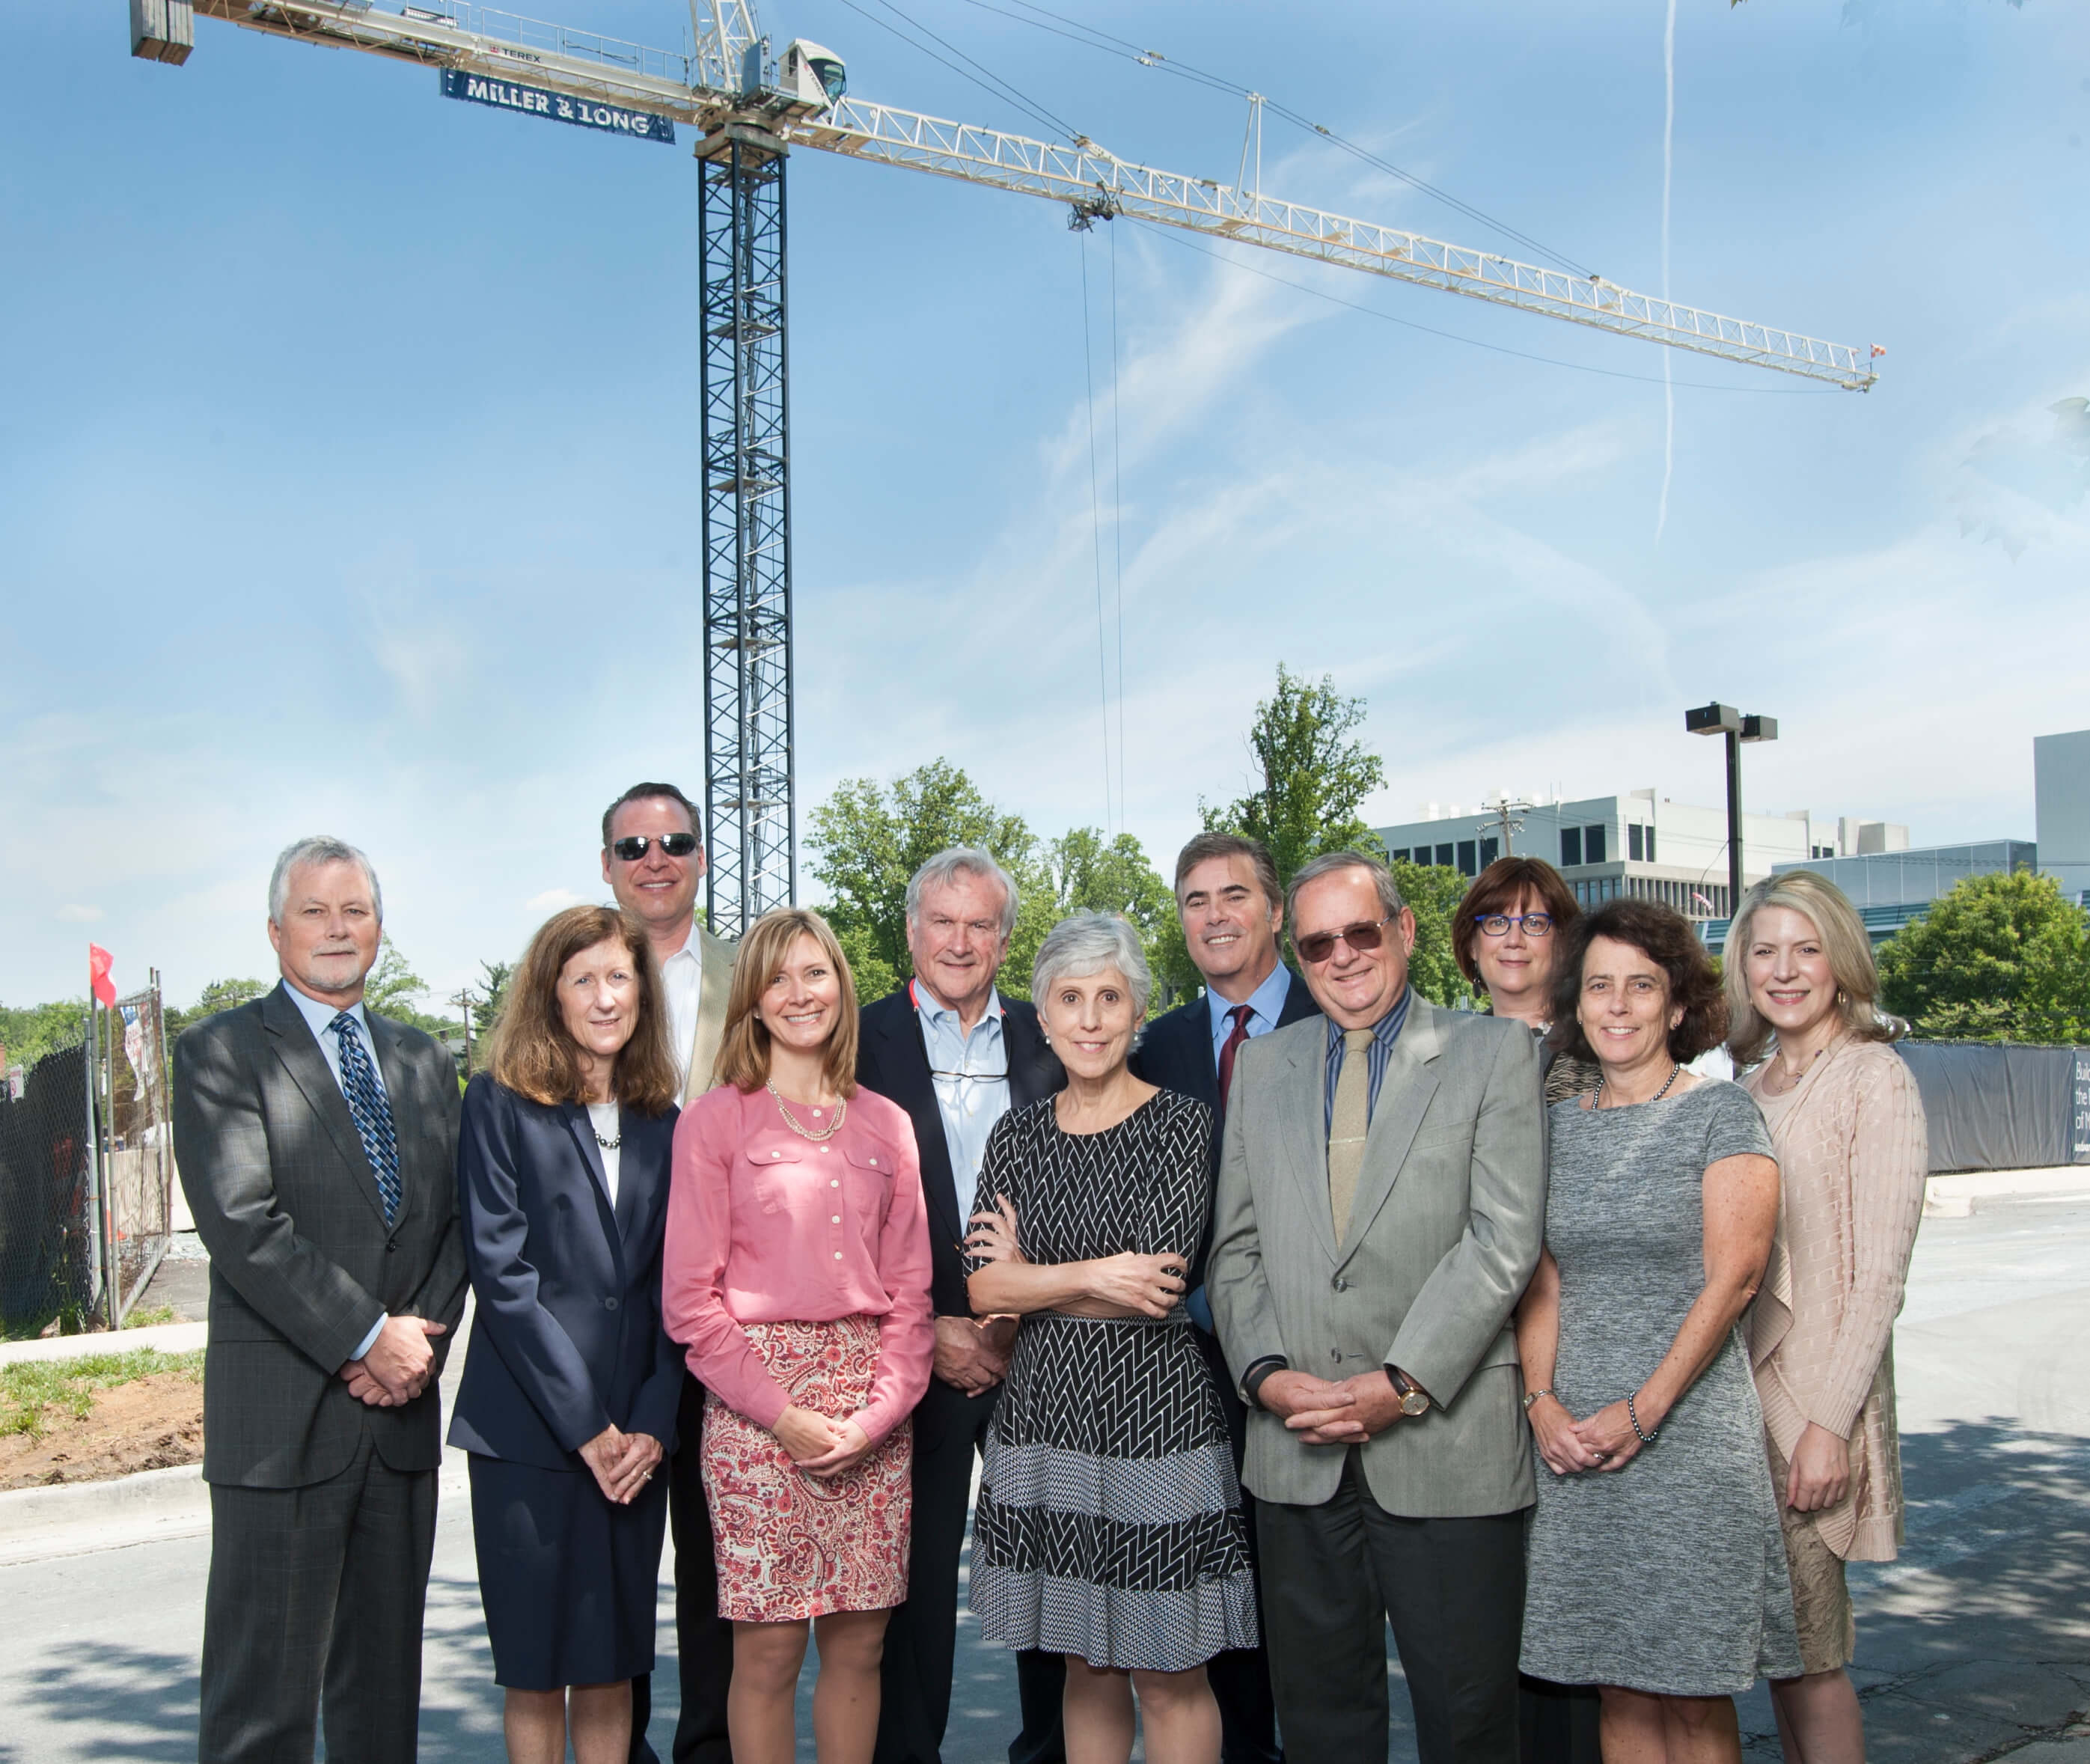 Executives and board members at the crane event